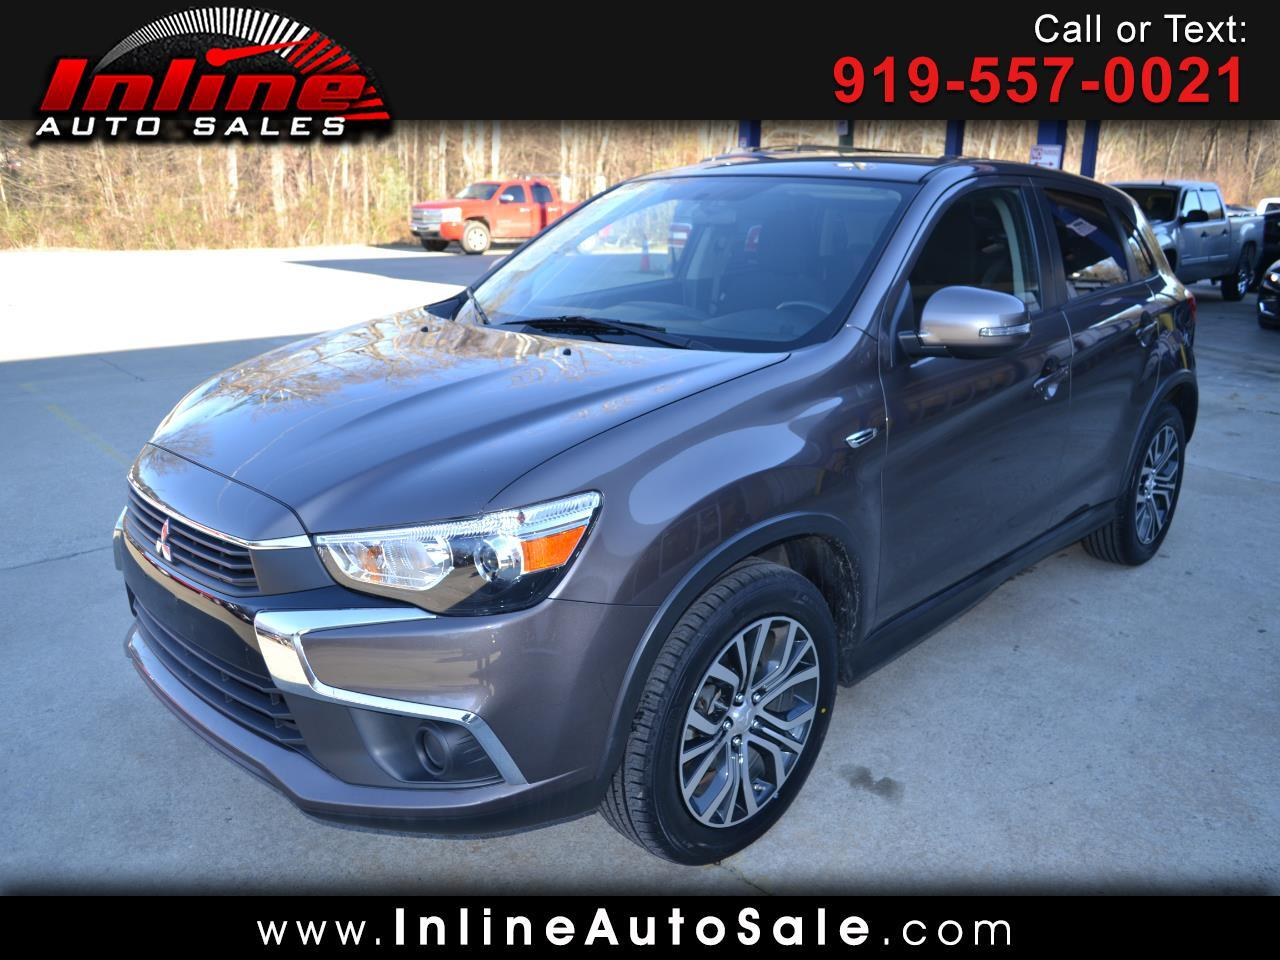 used 2017 mitsubishi outlander sport es 2 0 cvt for sale in fuquay varina nc 27526 inline auto sales. Black Bedroom Furniture Sets. Home Design Ideas